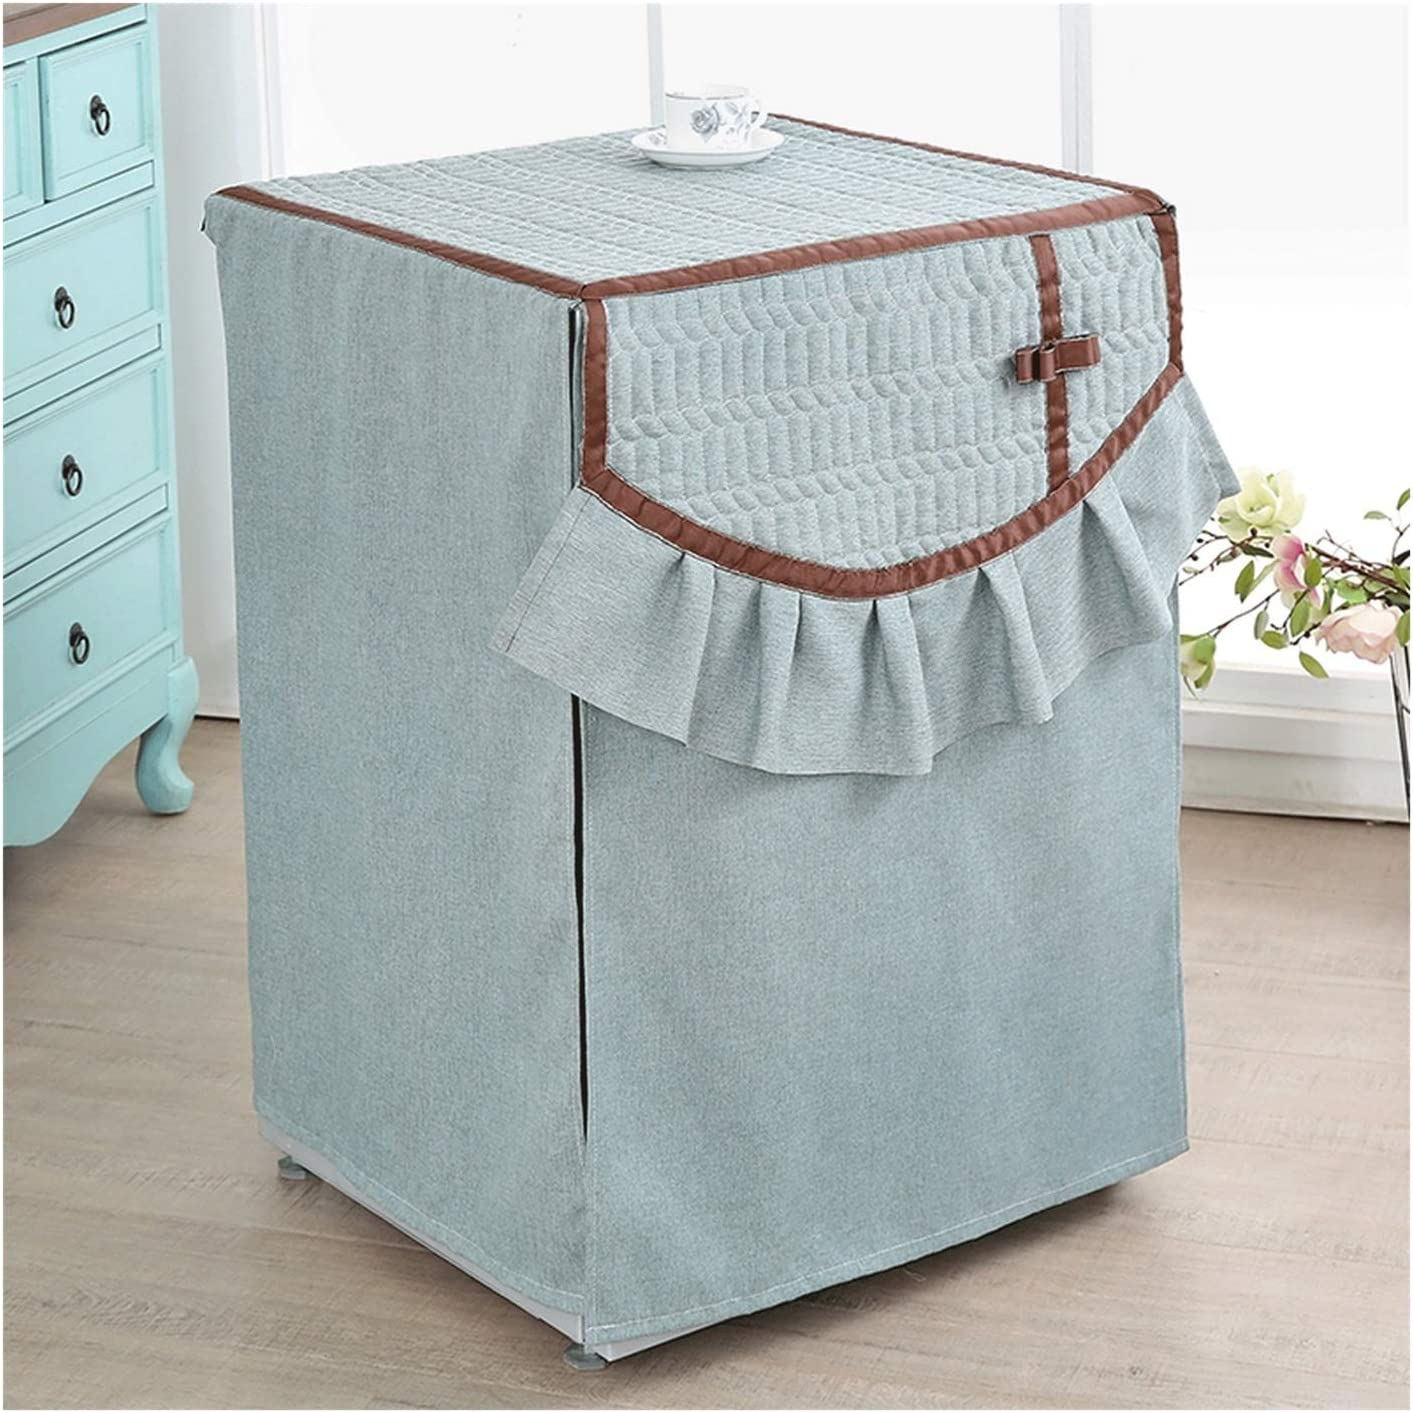 hongbanlemp Dust-Proof Cover A surprise price is Max 74% OFF realized Washing Machine Fa Thickened